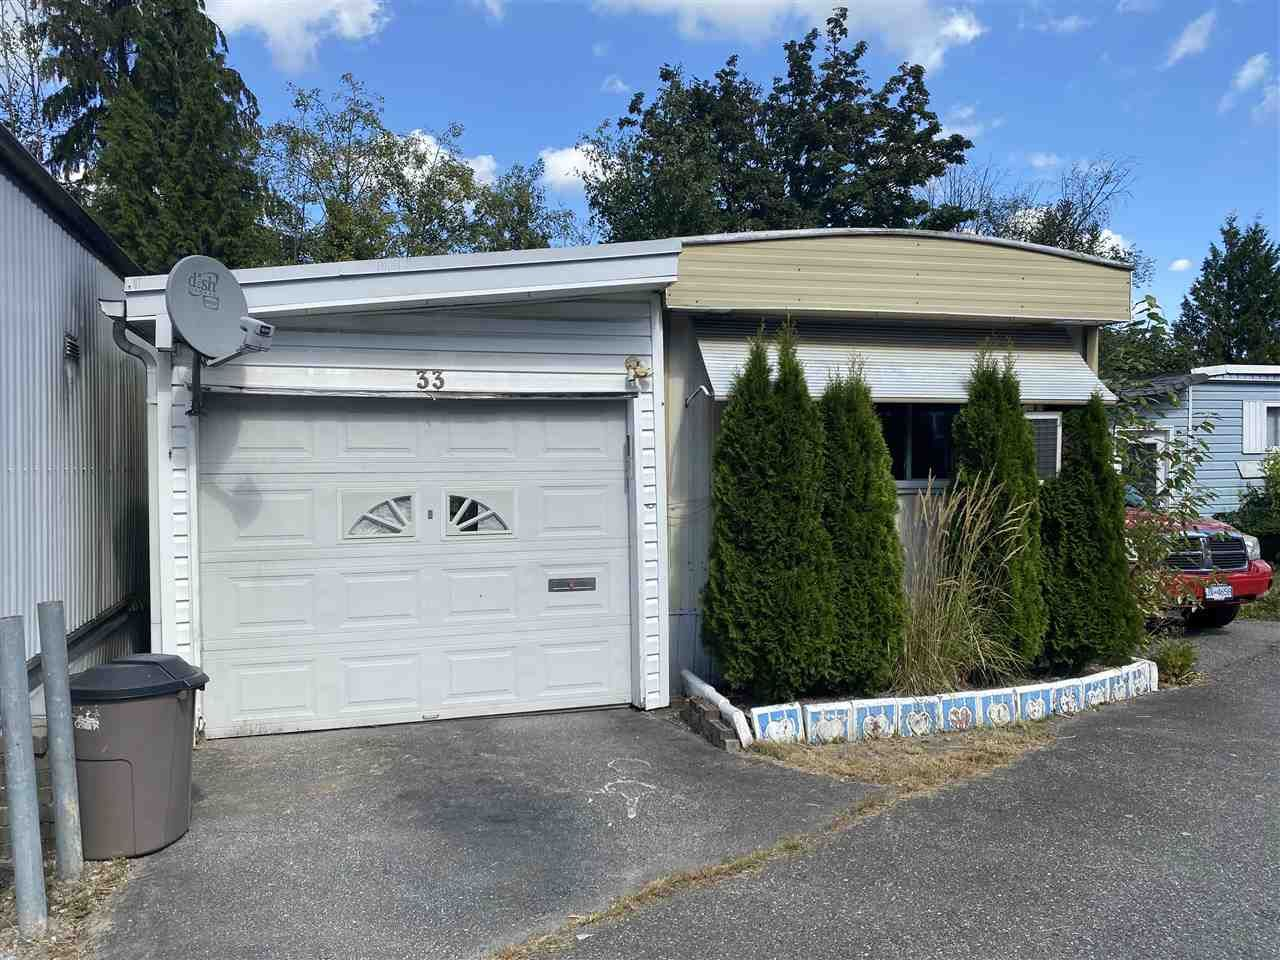 """Main Photo: 33 4200 DEWDNEY TRUNK Road in Coquitlam: Ranch Park Manufactured Home for sale in """"HIDEAWAY PARK"""" : MLS®# R2490732"""